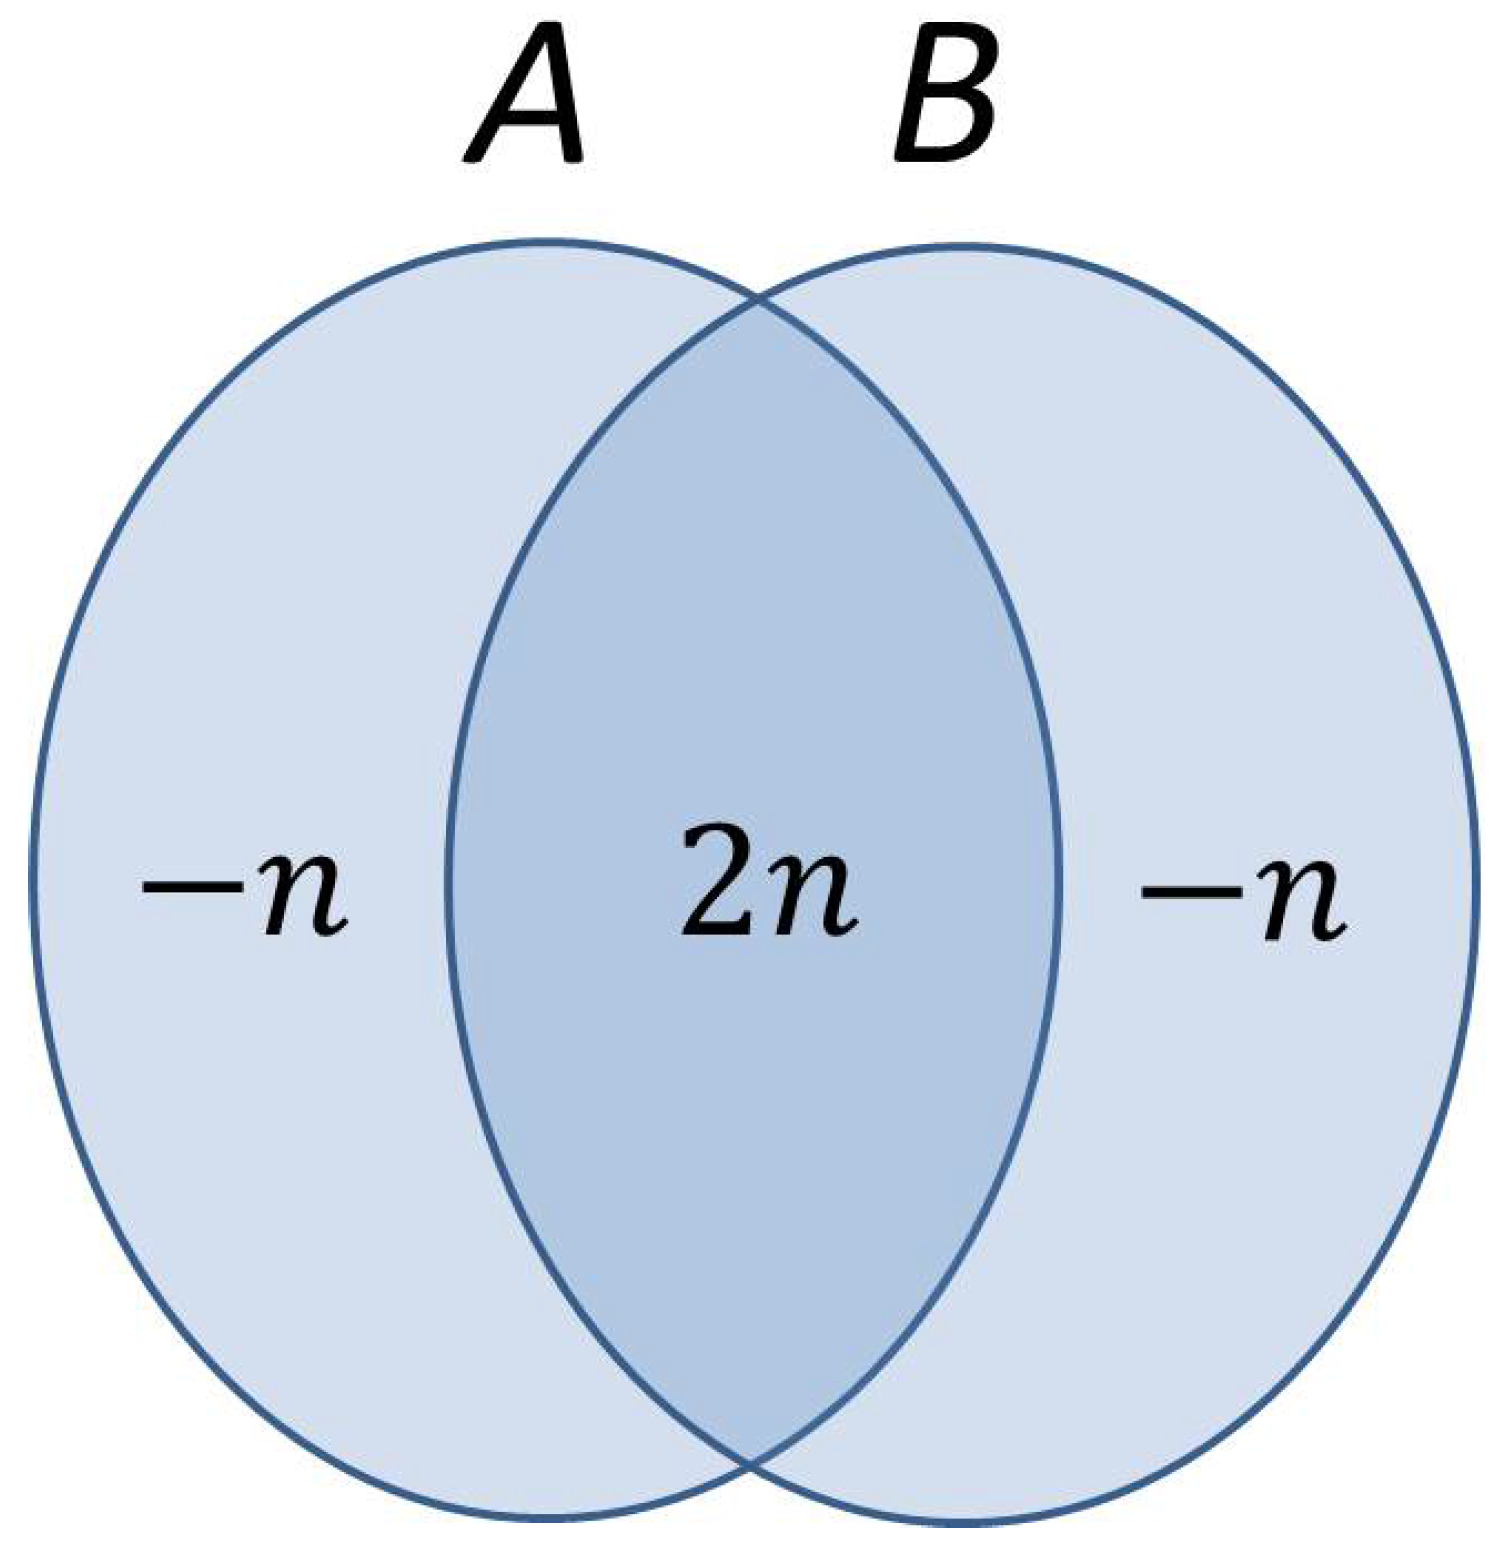 Entropy | Free Full-Text | An Information-Theoretic